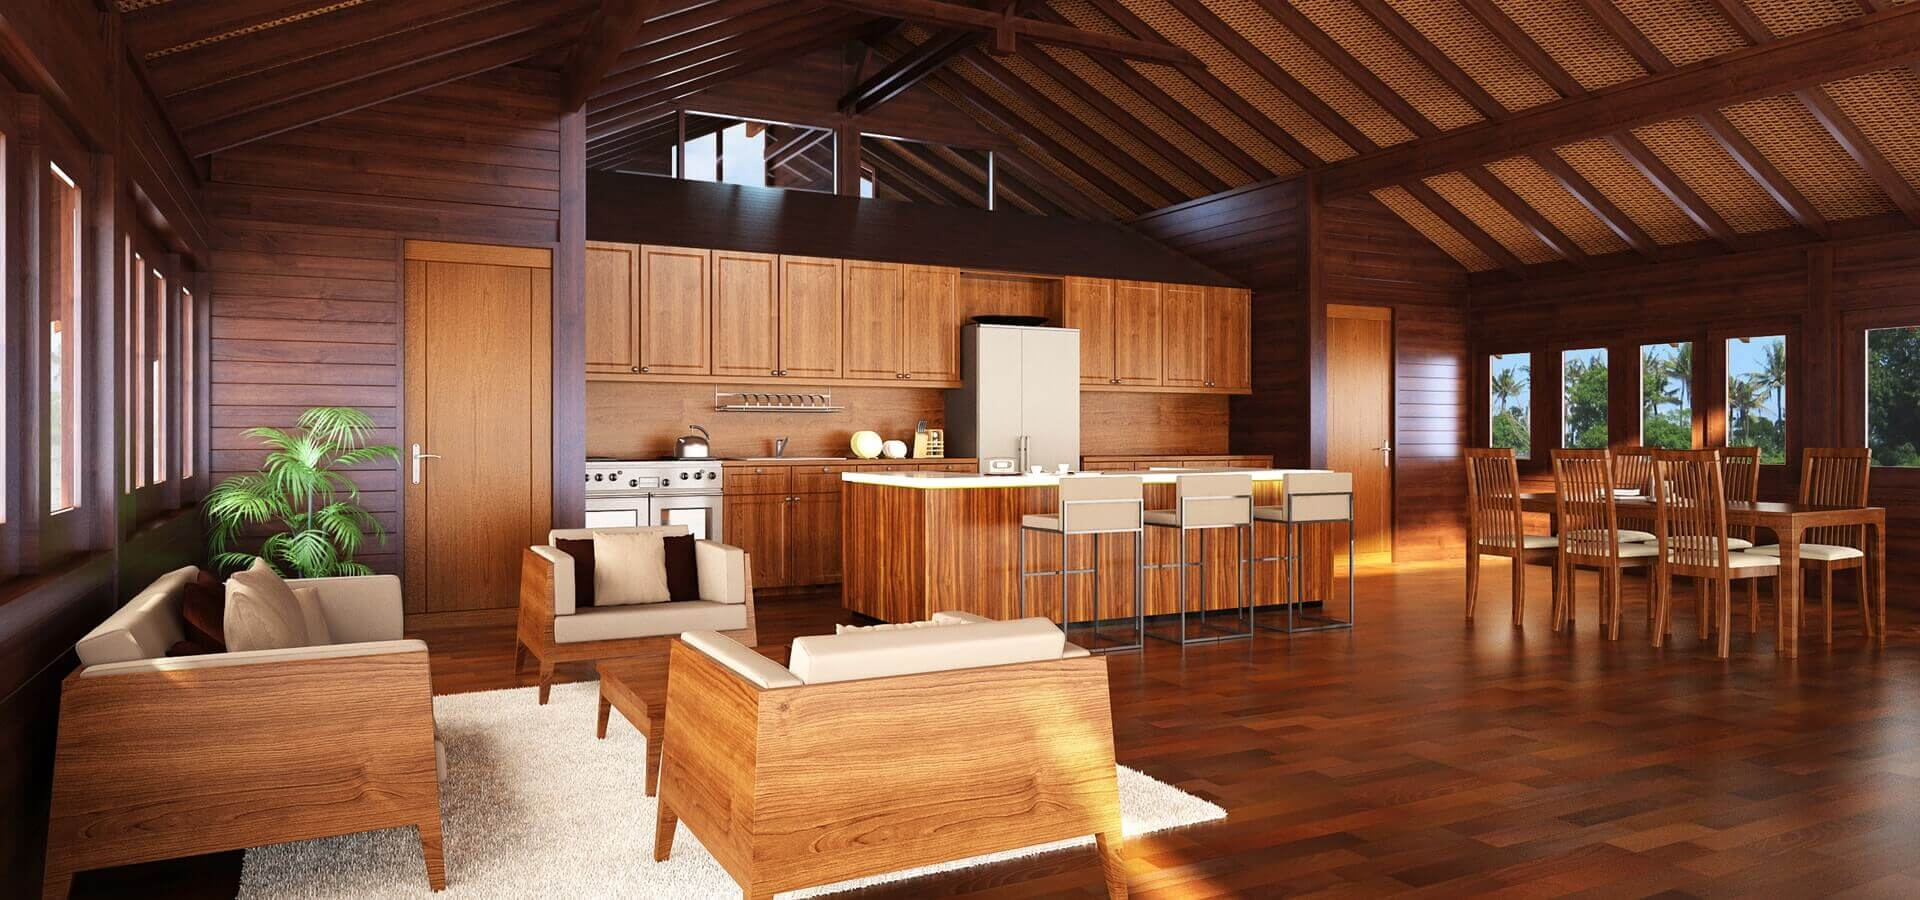 Luxury Prefab Hardwood Homes Amp Houses By Teak Bali